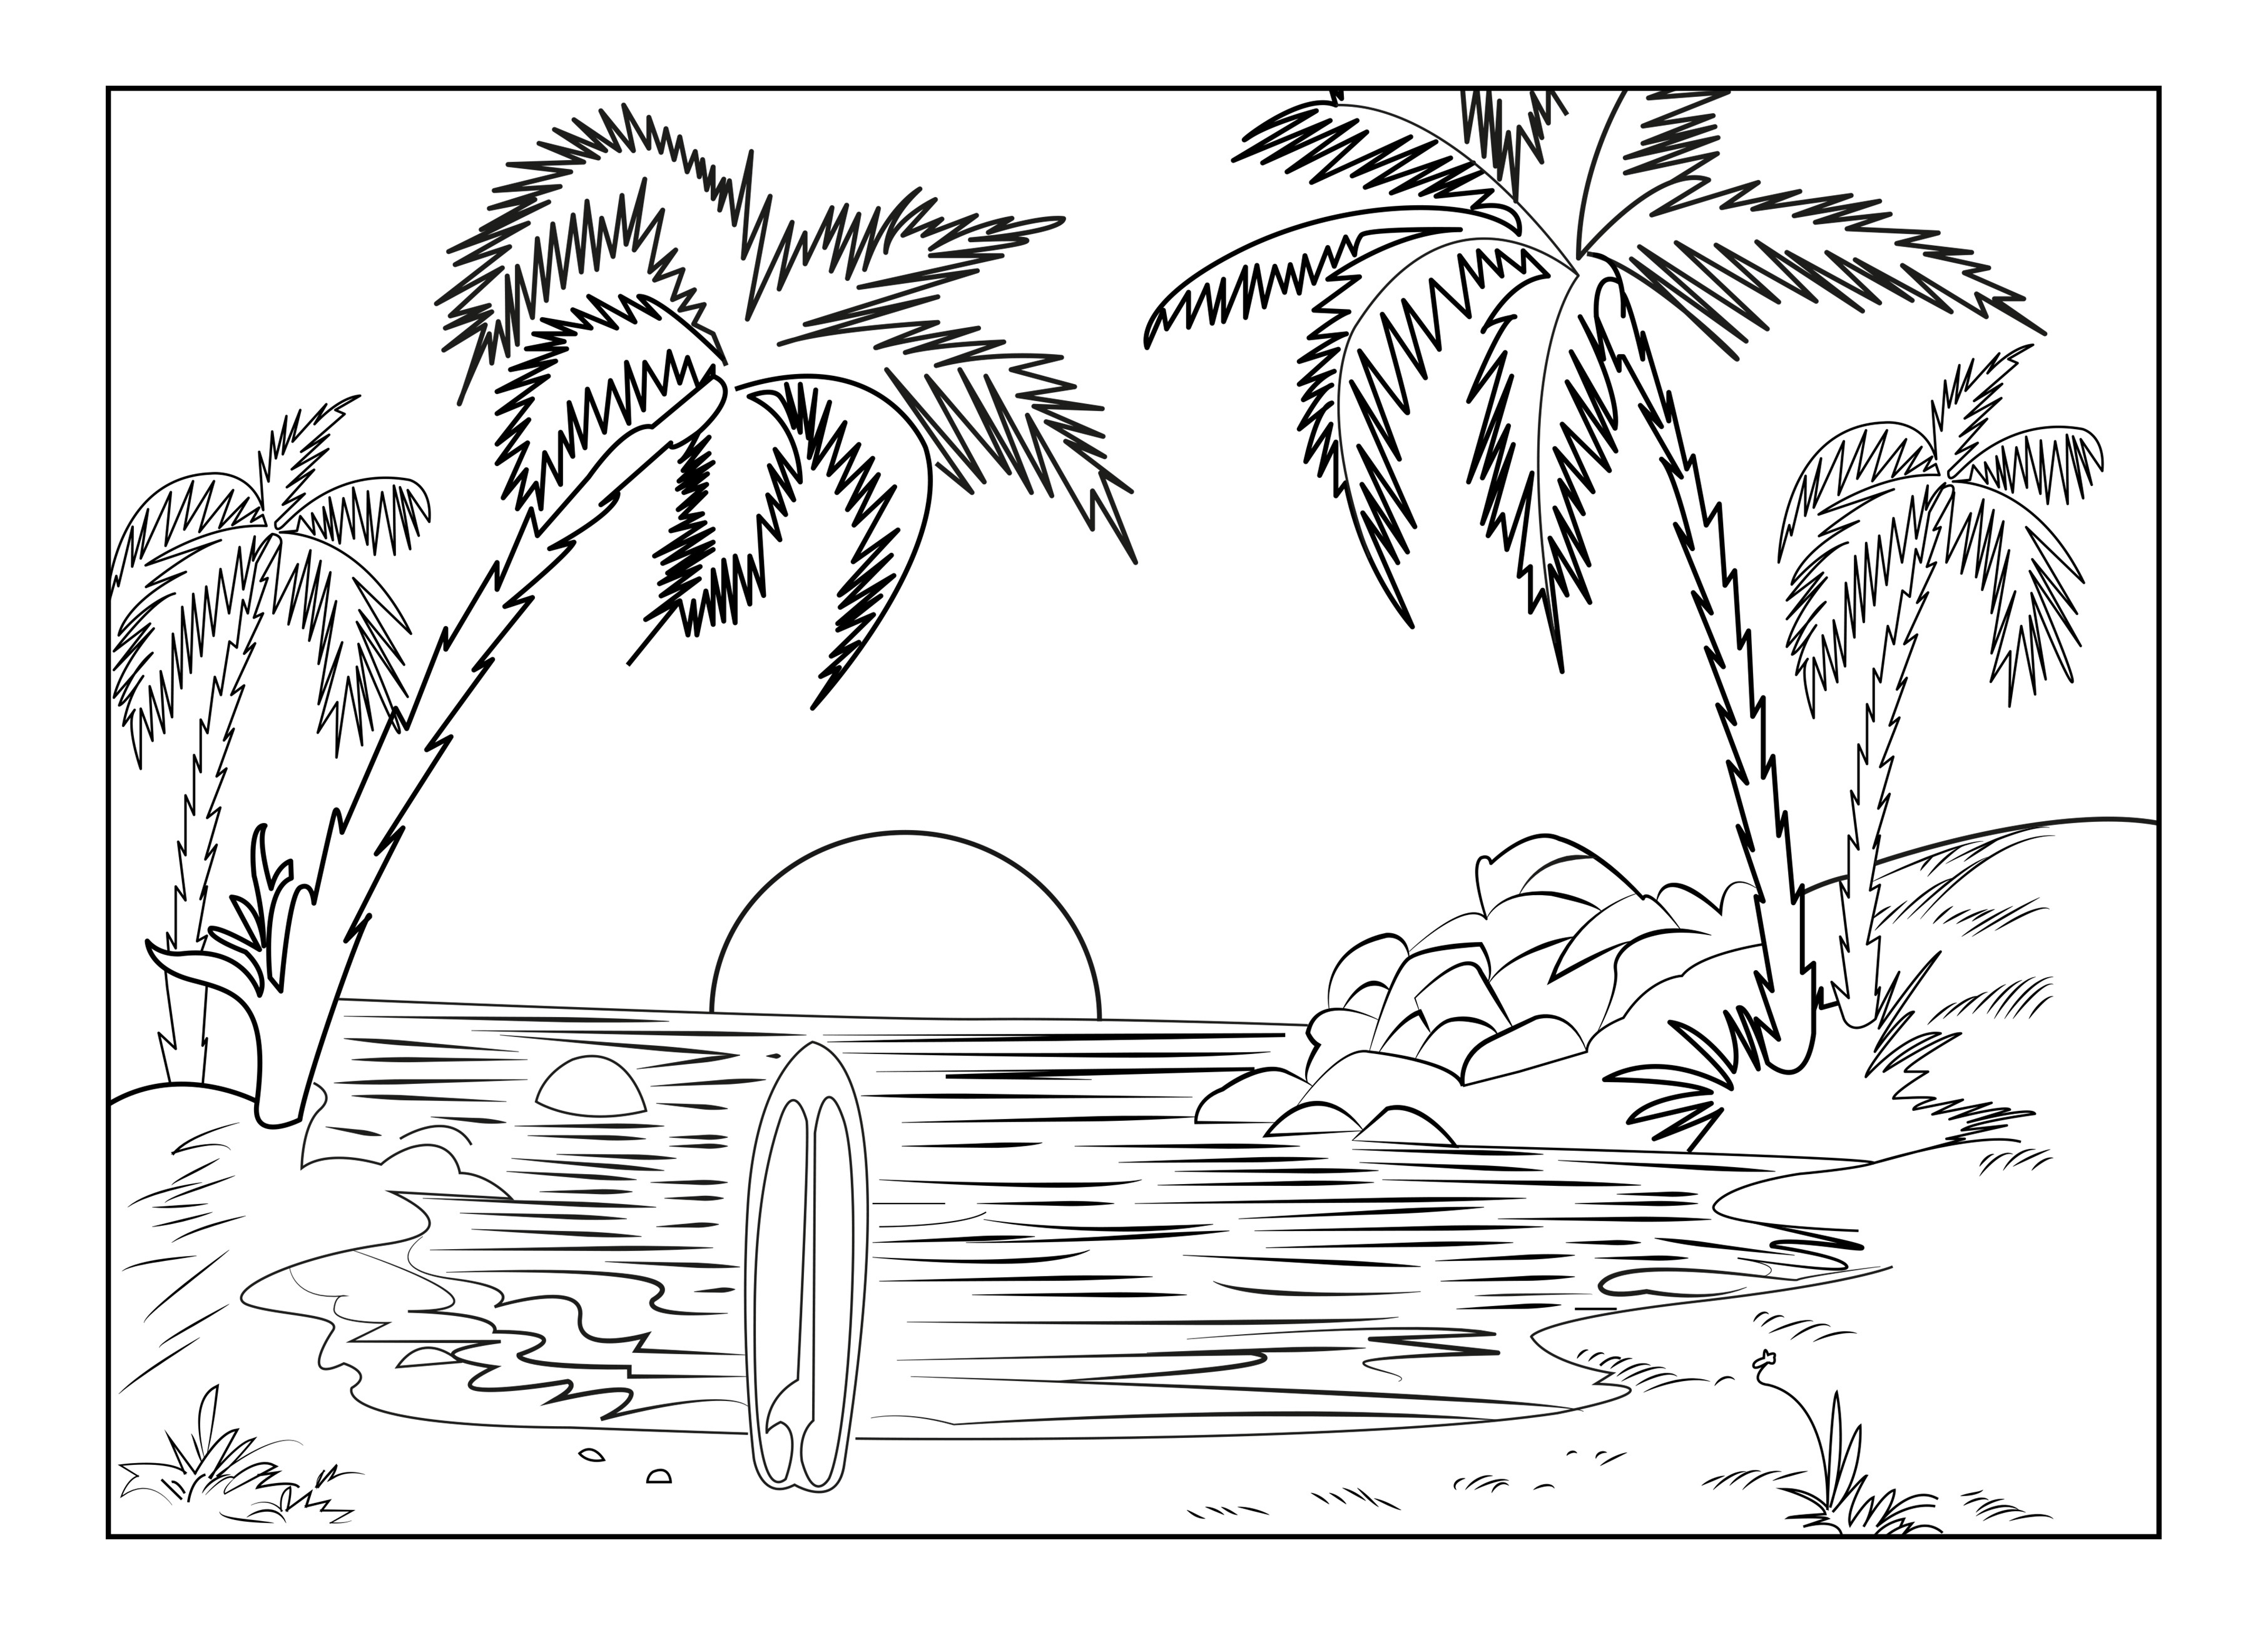 Coloring Page ~ Free Printable Natureing Pages For Adults Nice - Free Printable Nature Coloring Pages